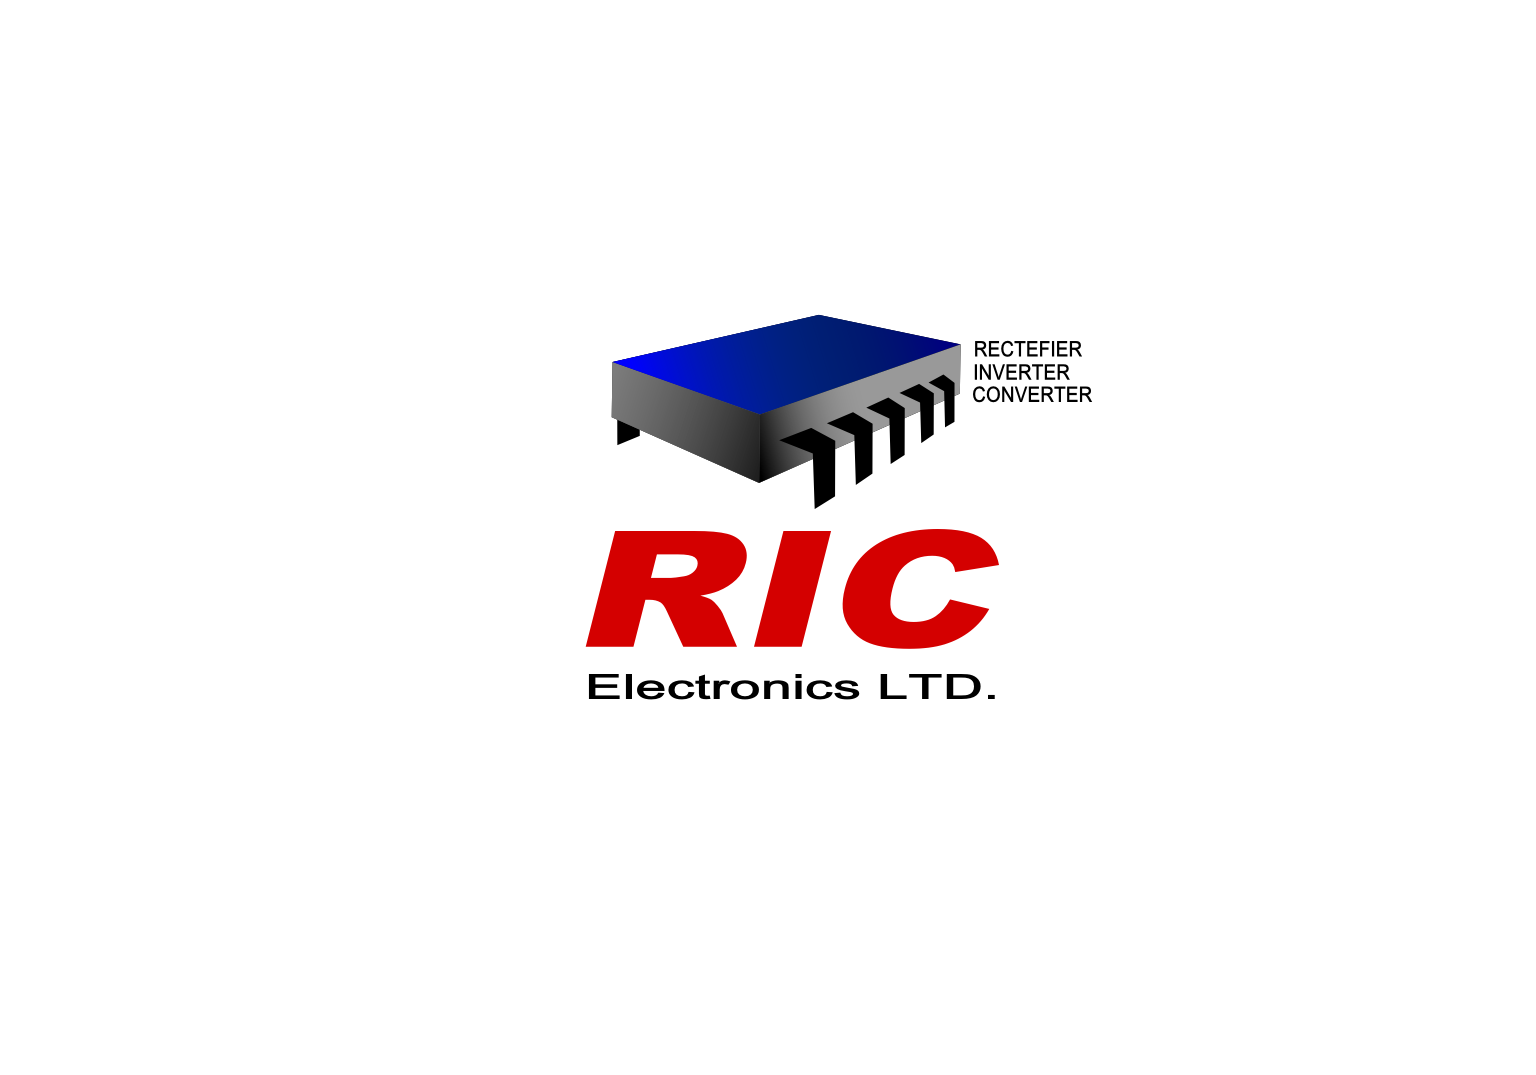 Logo Design by Joseph calunsag Cagaanan - Entry No. 75 in the Logo Design Contest New Logo Design for RIC Electronics Ltd..